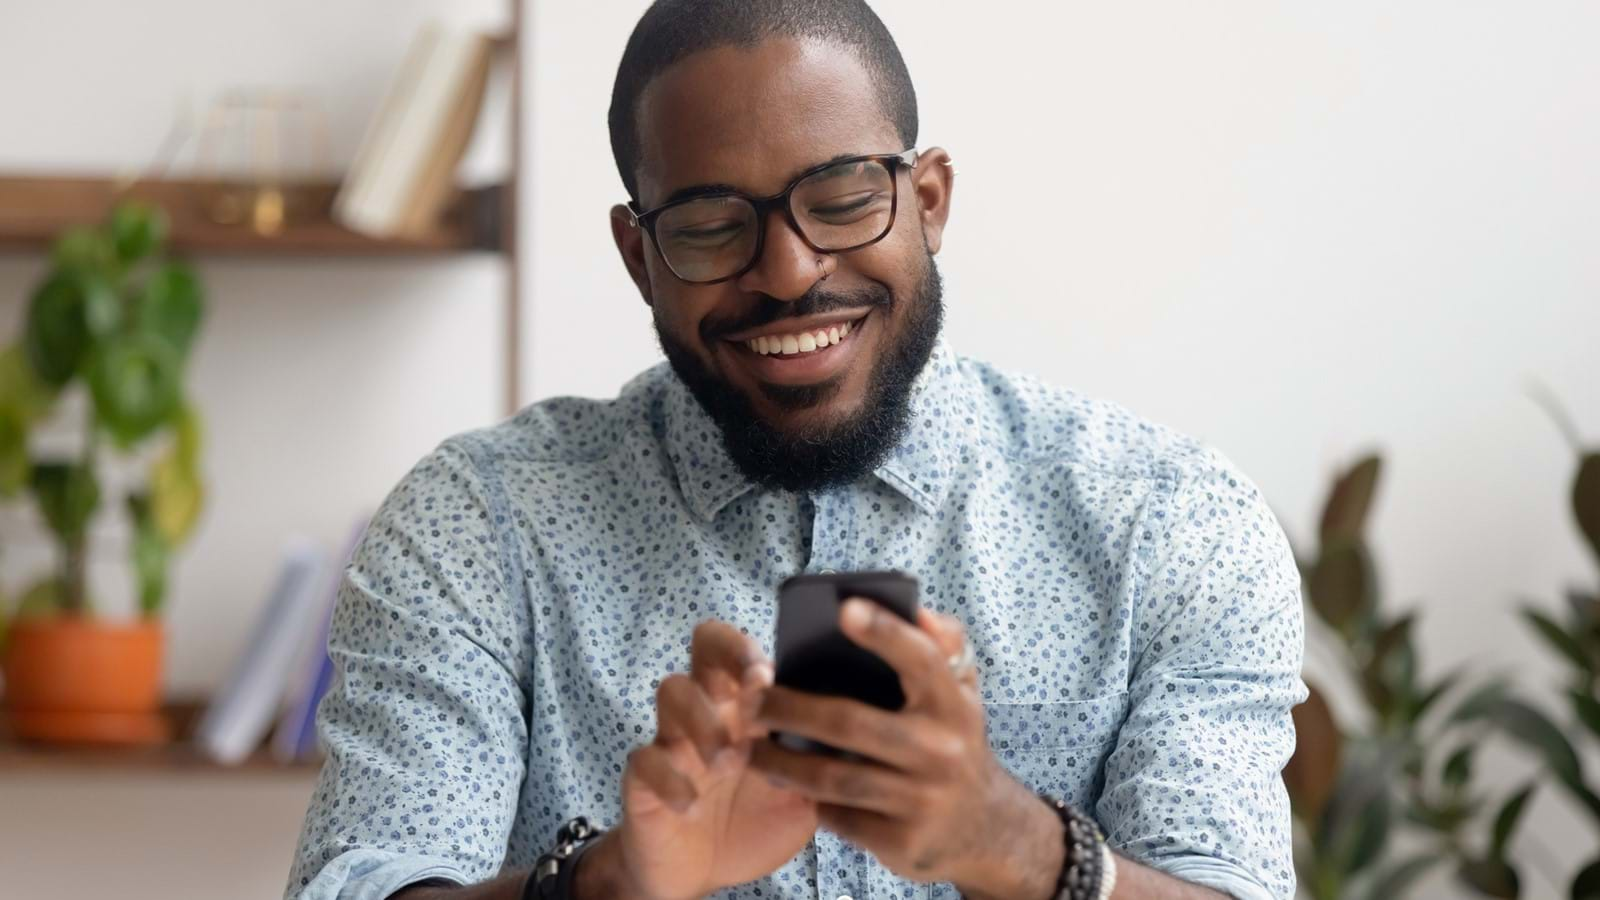 Employee using his mobile to reach his company's digital workplace, smiling and having a good experience